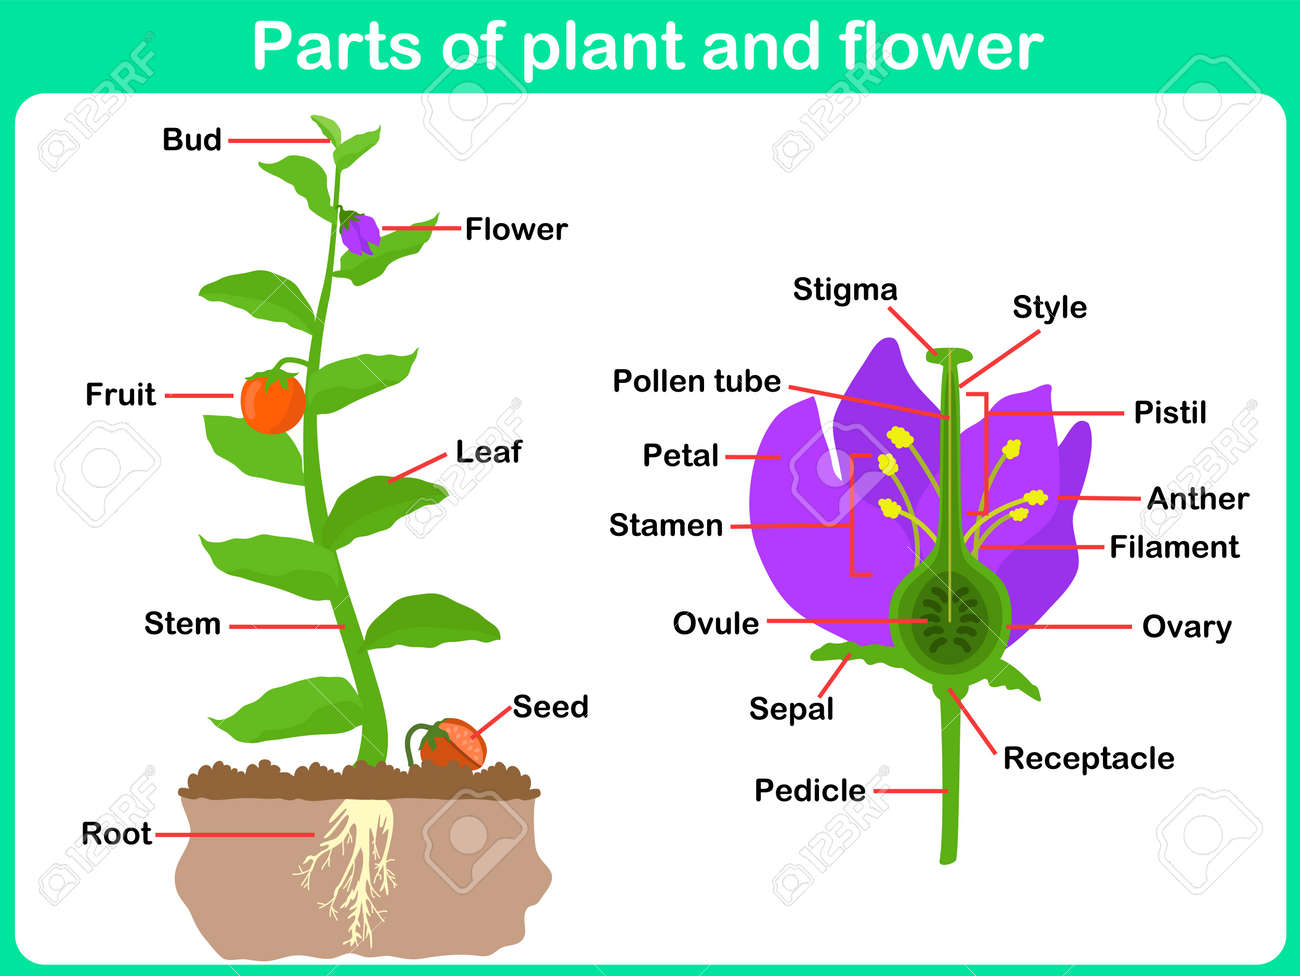 Leaning Parts Of Plant And Flower For Kids Worksheet Royalty Free